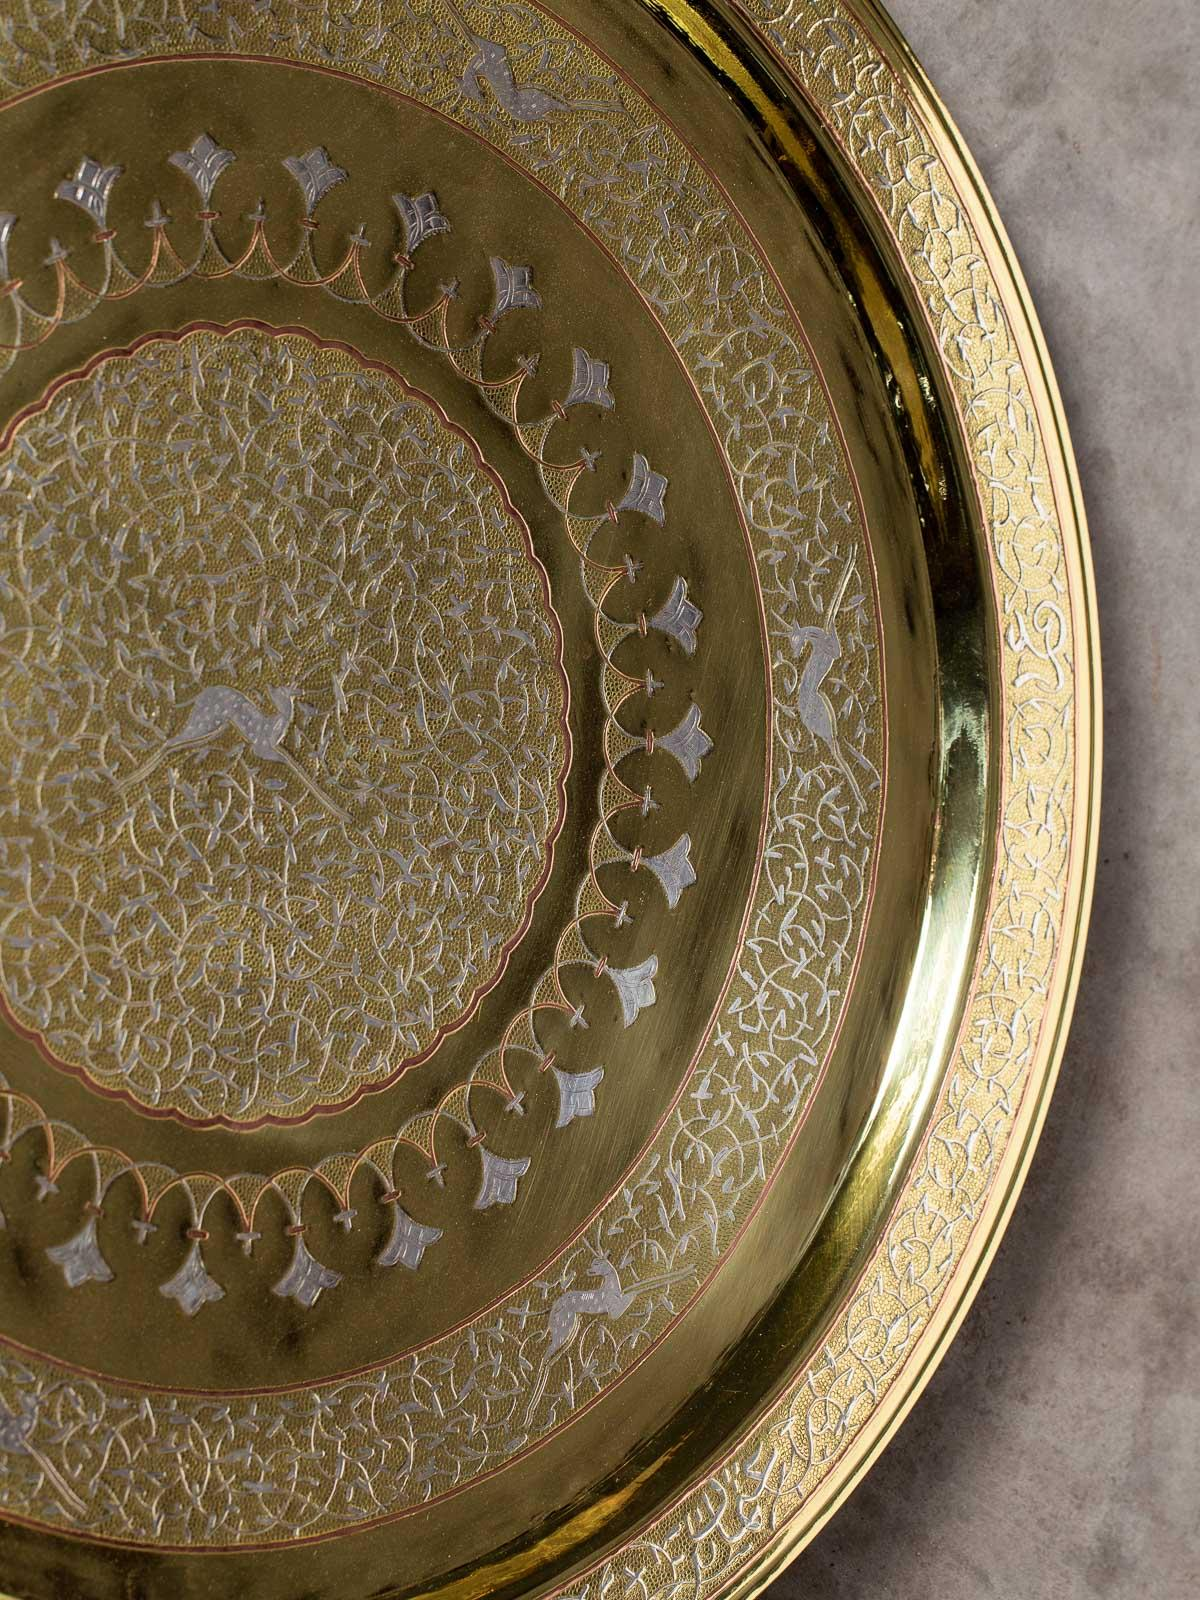 Home & Hearth Antique Brass And Coooer Plates Made In Hullan Various Styles